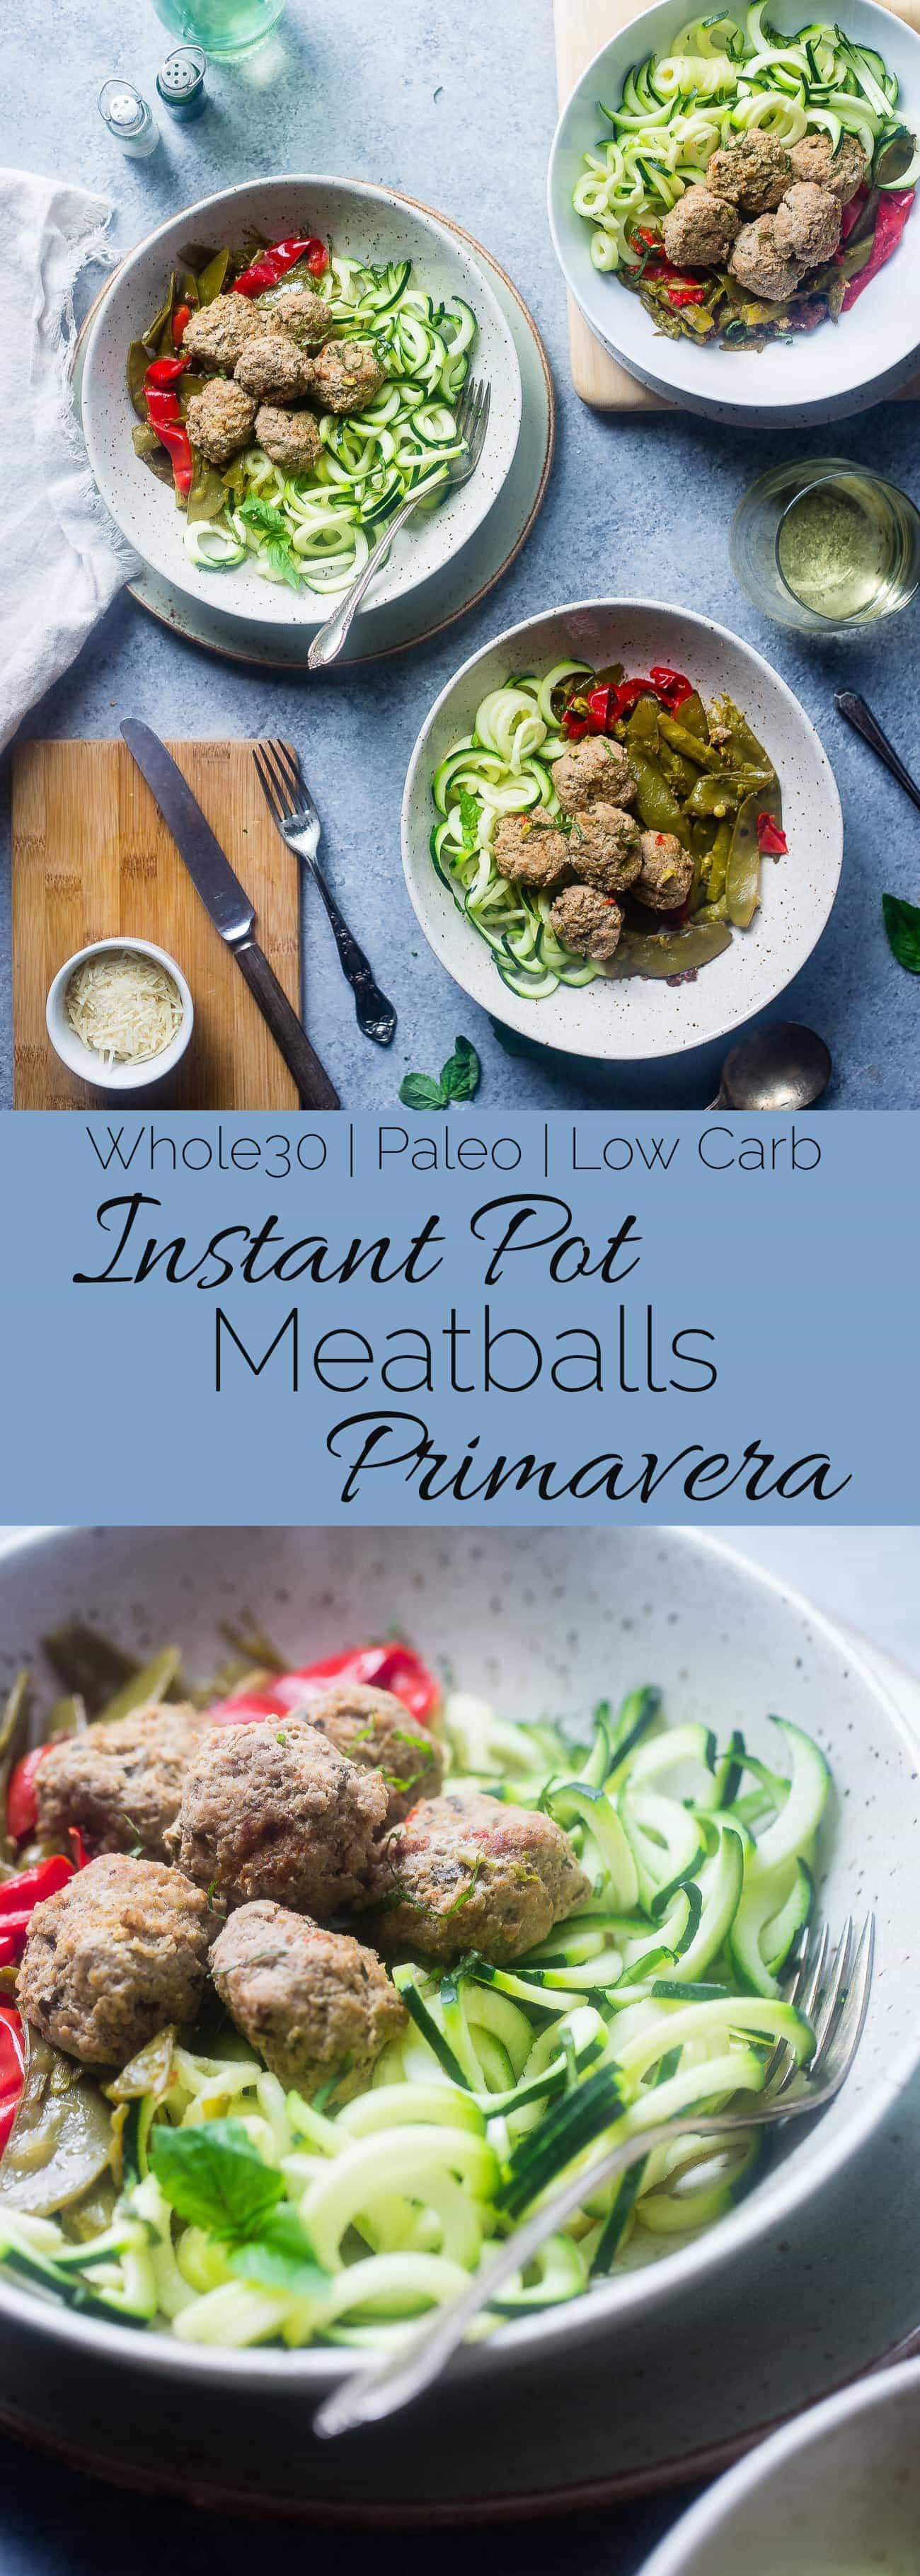 Whole30 Instant Pot Meatballs Primavera - These low carb instant pot meatballs taste like pasta primavera! They're a healthy, gluten free and paleo spring meal for only 300 calories! | Foodfaithfitness.com | @FoodFaithFit